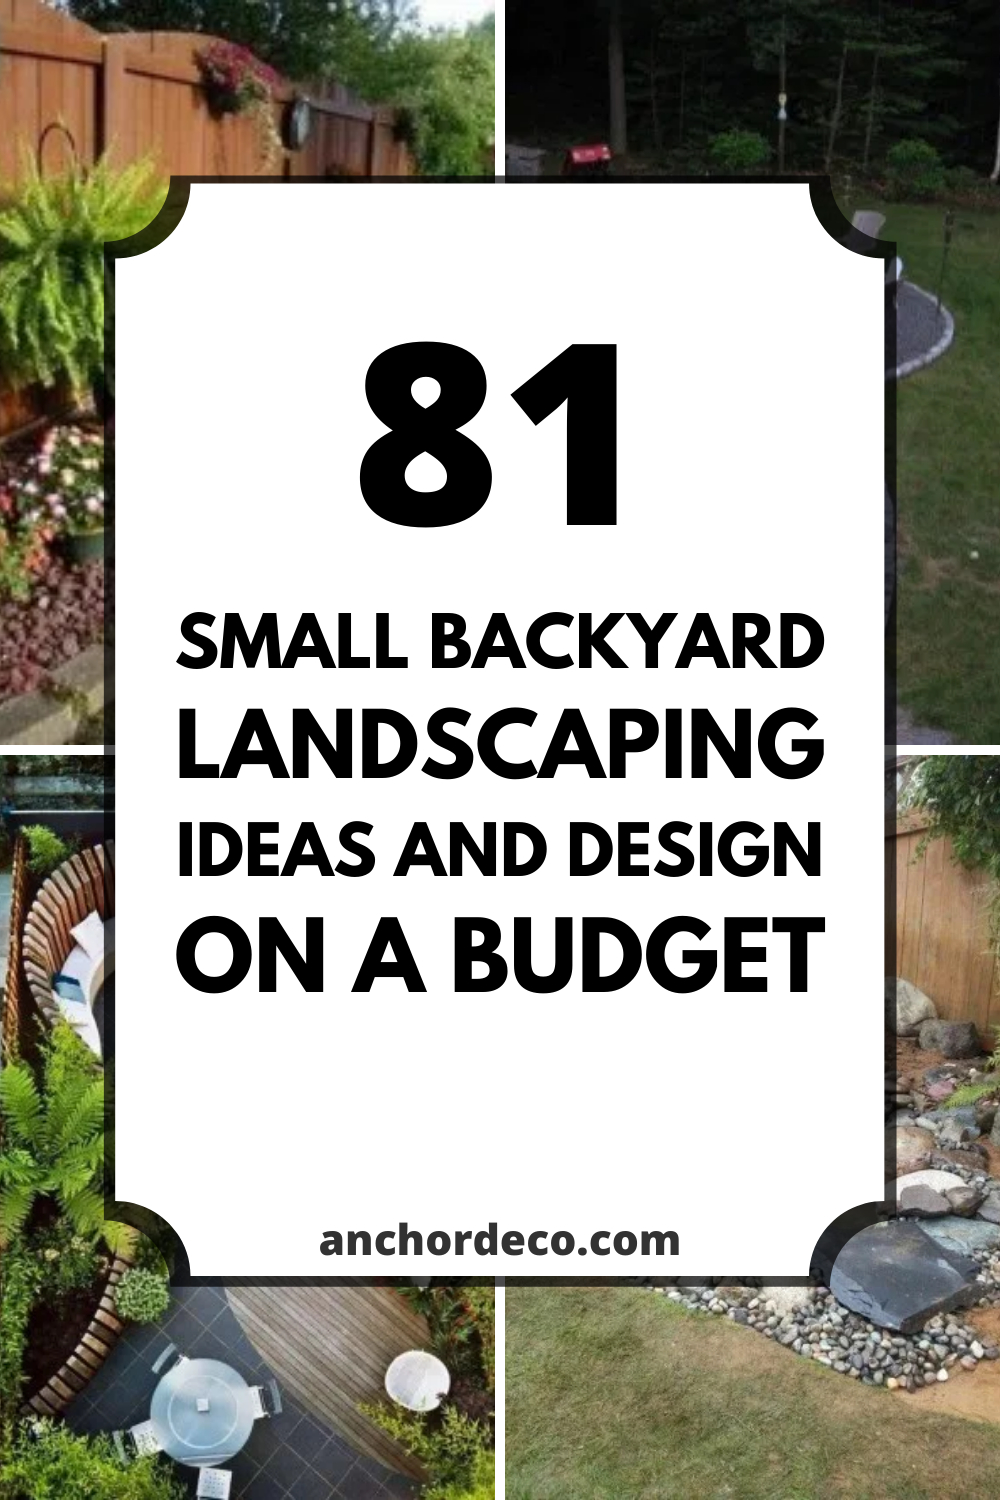 81 Small Backyard Landscaping Ideas And Design On A Budget Anchordeco Com,Modern Victorian Era Furniture